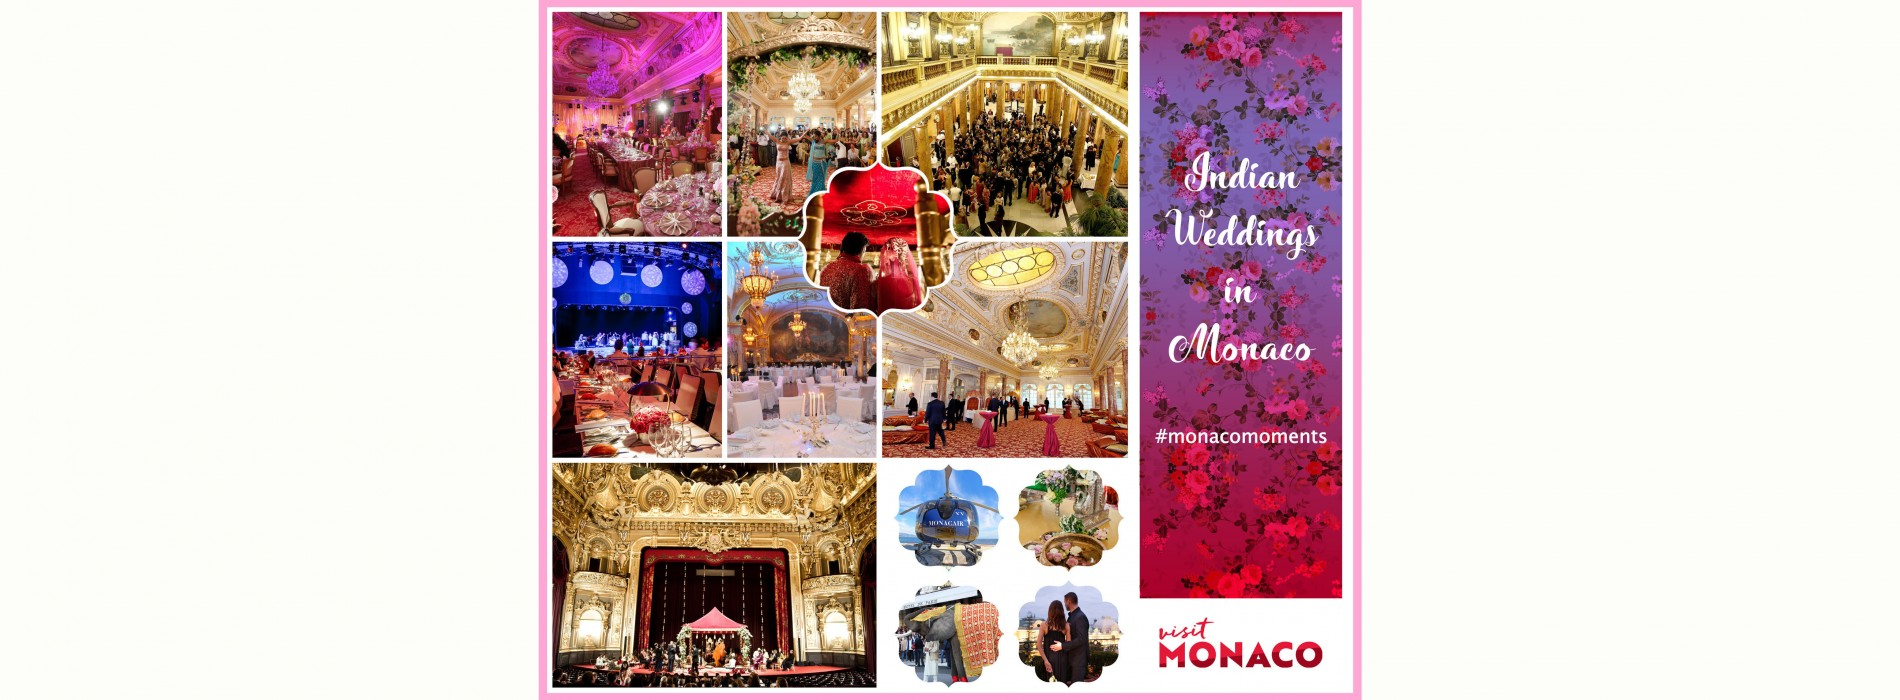 Say 'I Do' in unmatched style at Monaco